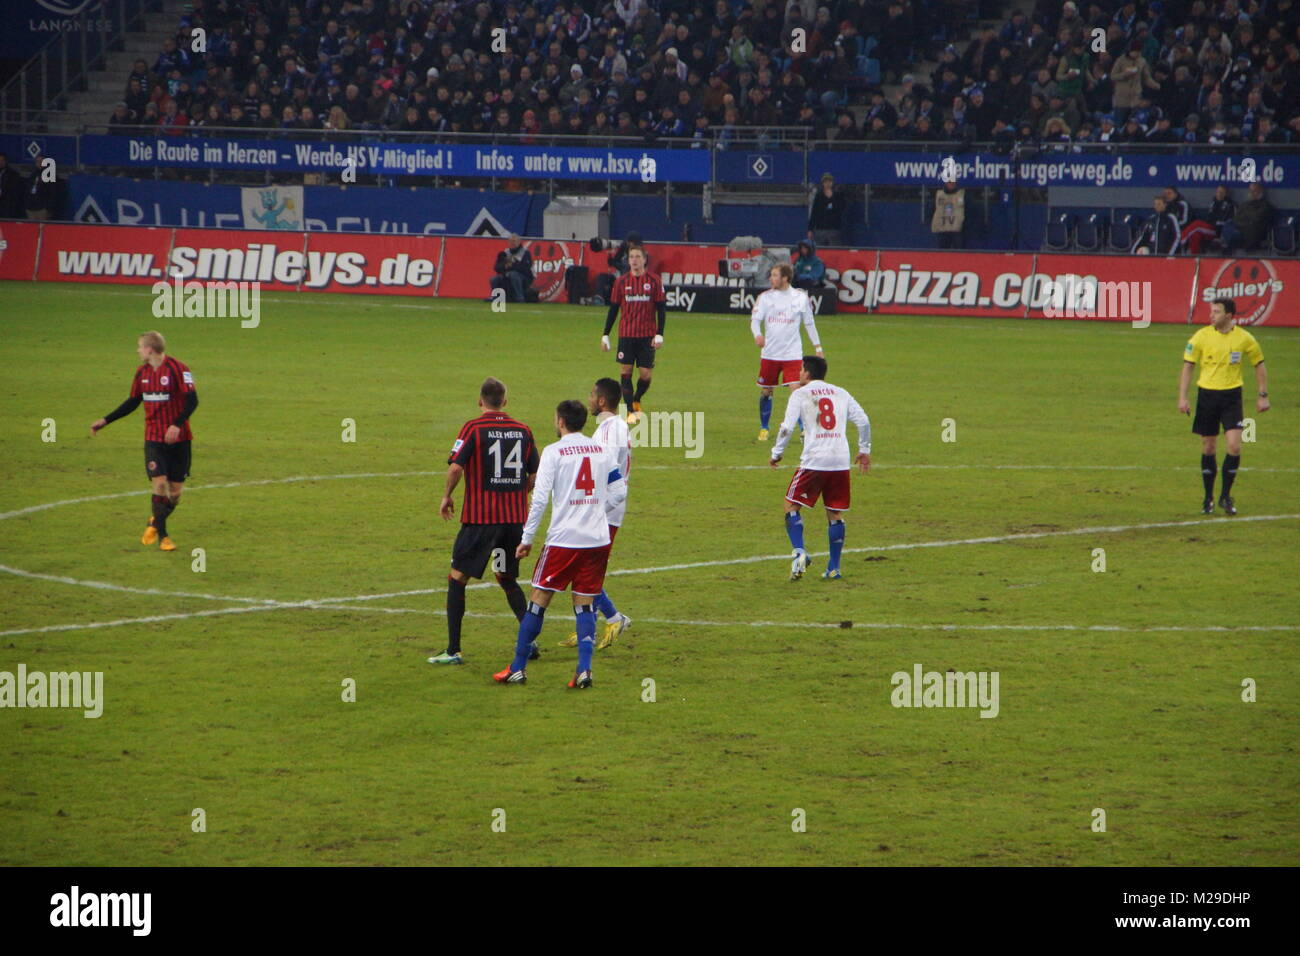 The Football Player From The Team Hamburger Sportverein Hsv Hamburg Stock Photo Alamy